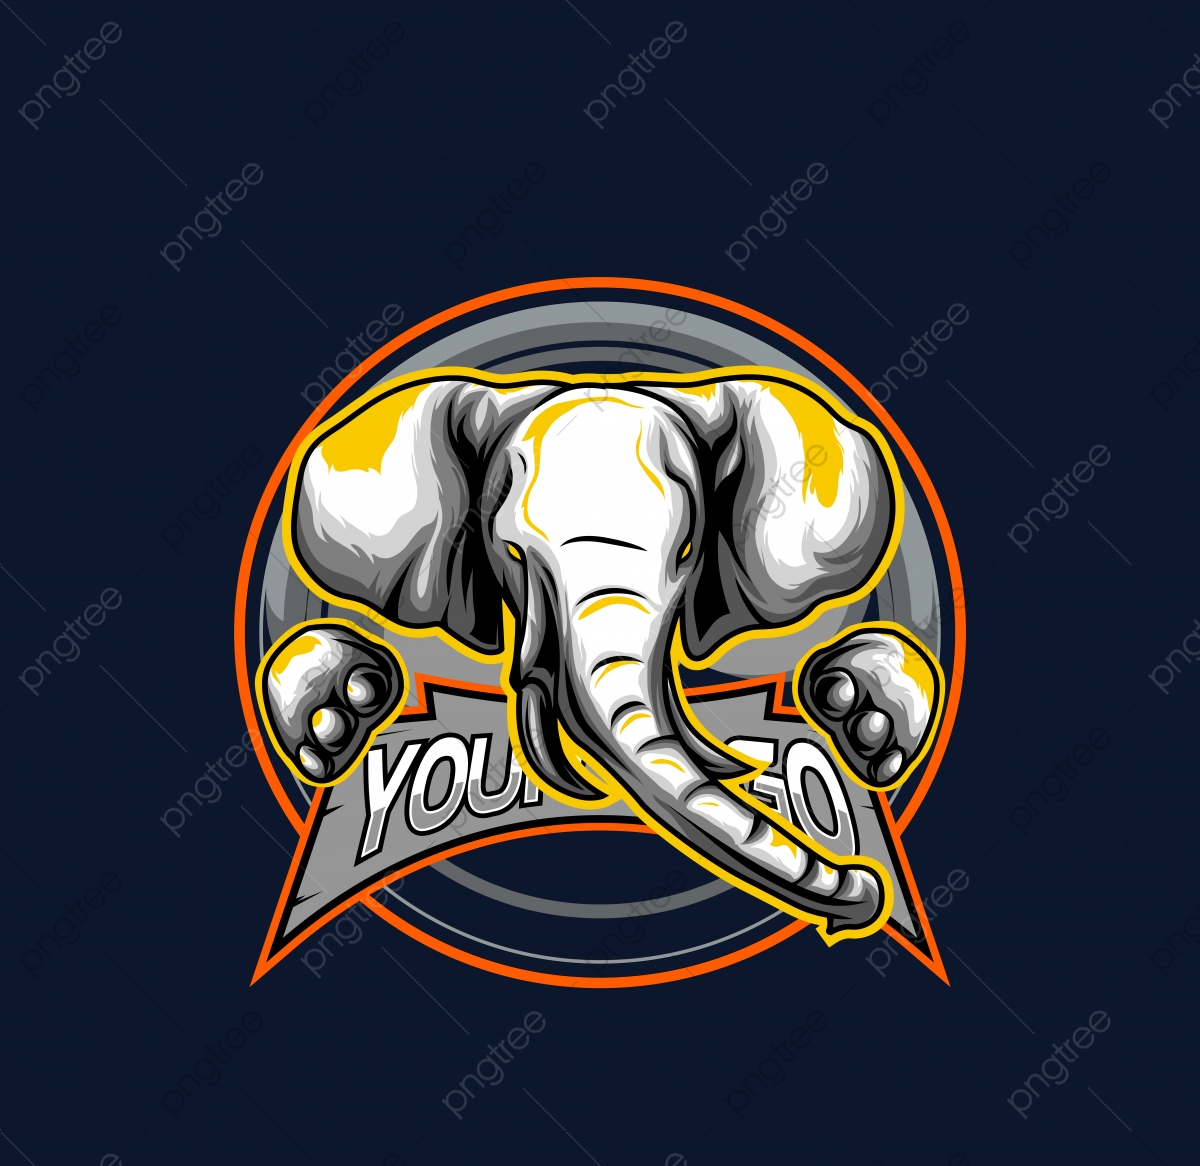 Elephant Head Png Images Vector And Psd Files Free Download On Pngtree